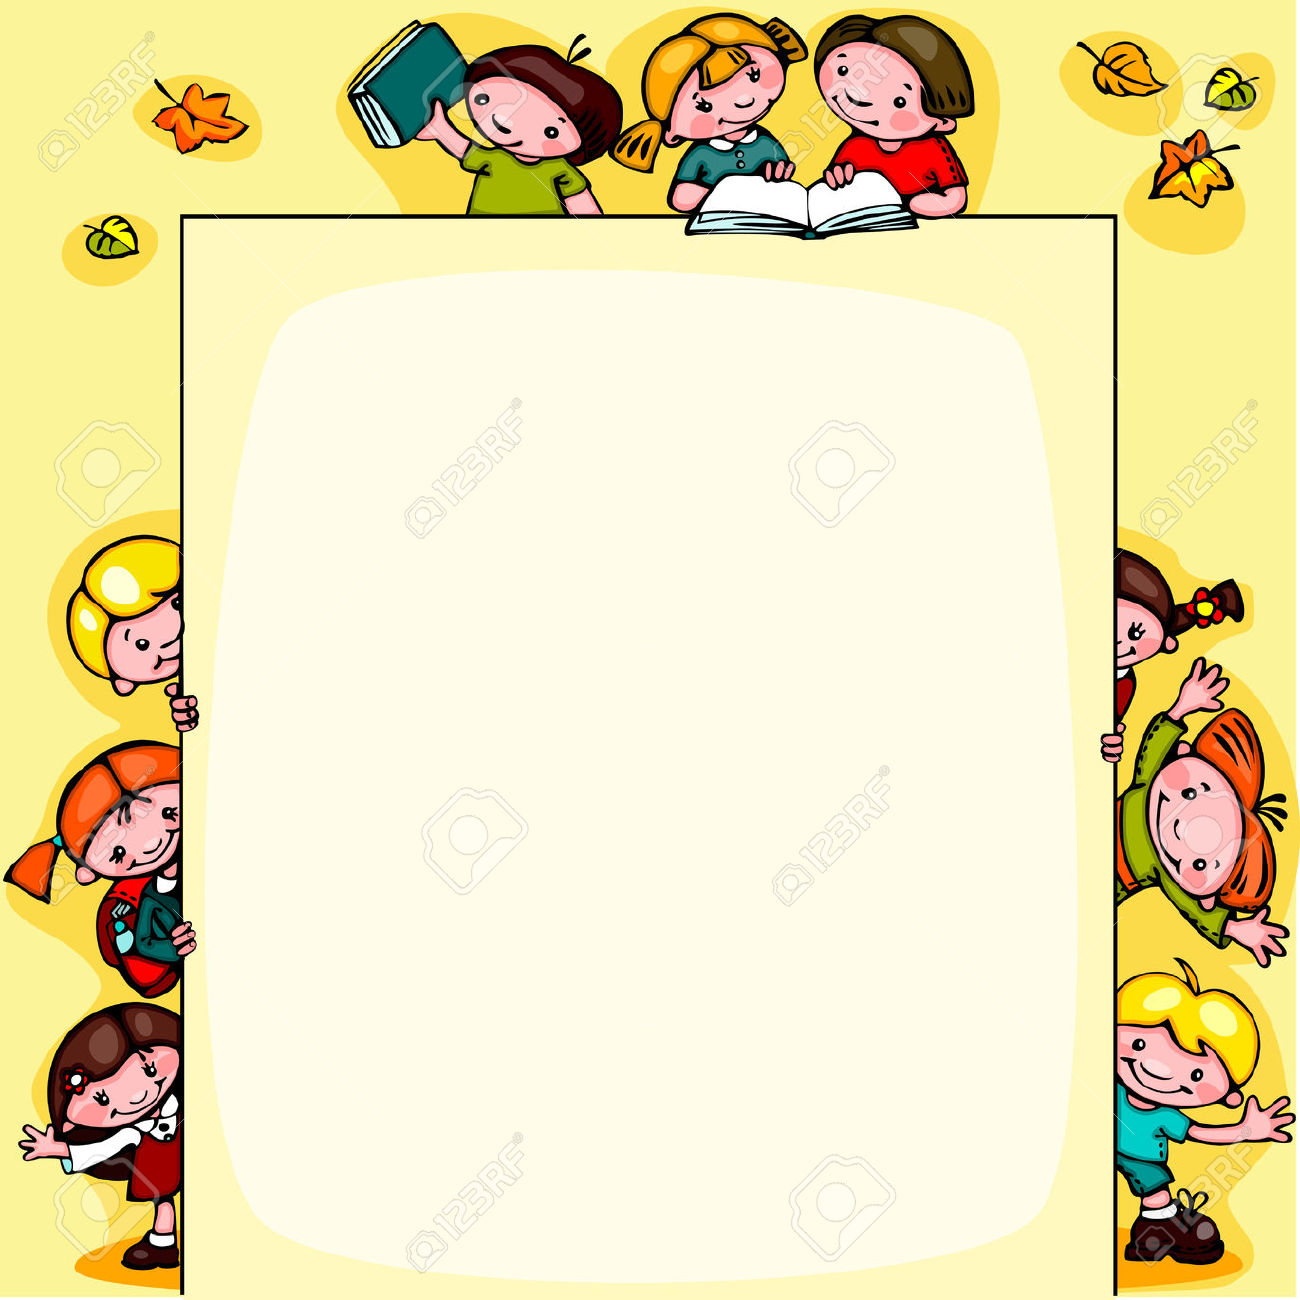 Child clipart boarder Clipart borders backgrounds Little and